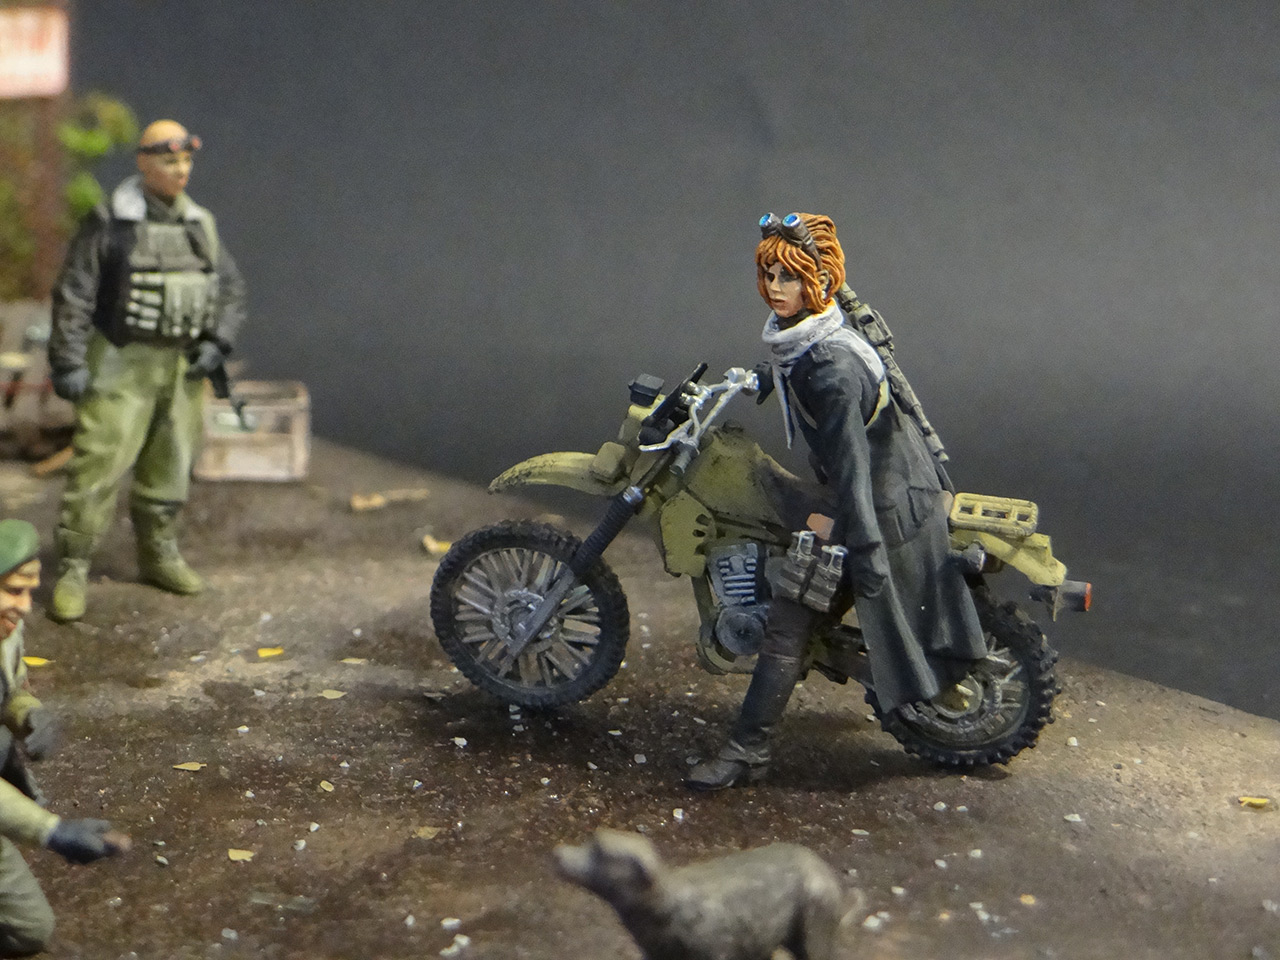 Dioramas and Vignettes: Road Warriors, photo #22